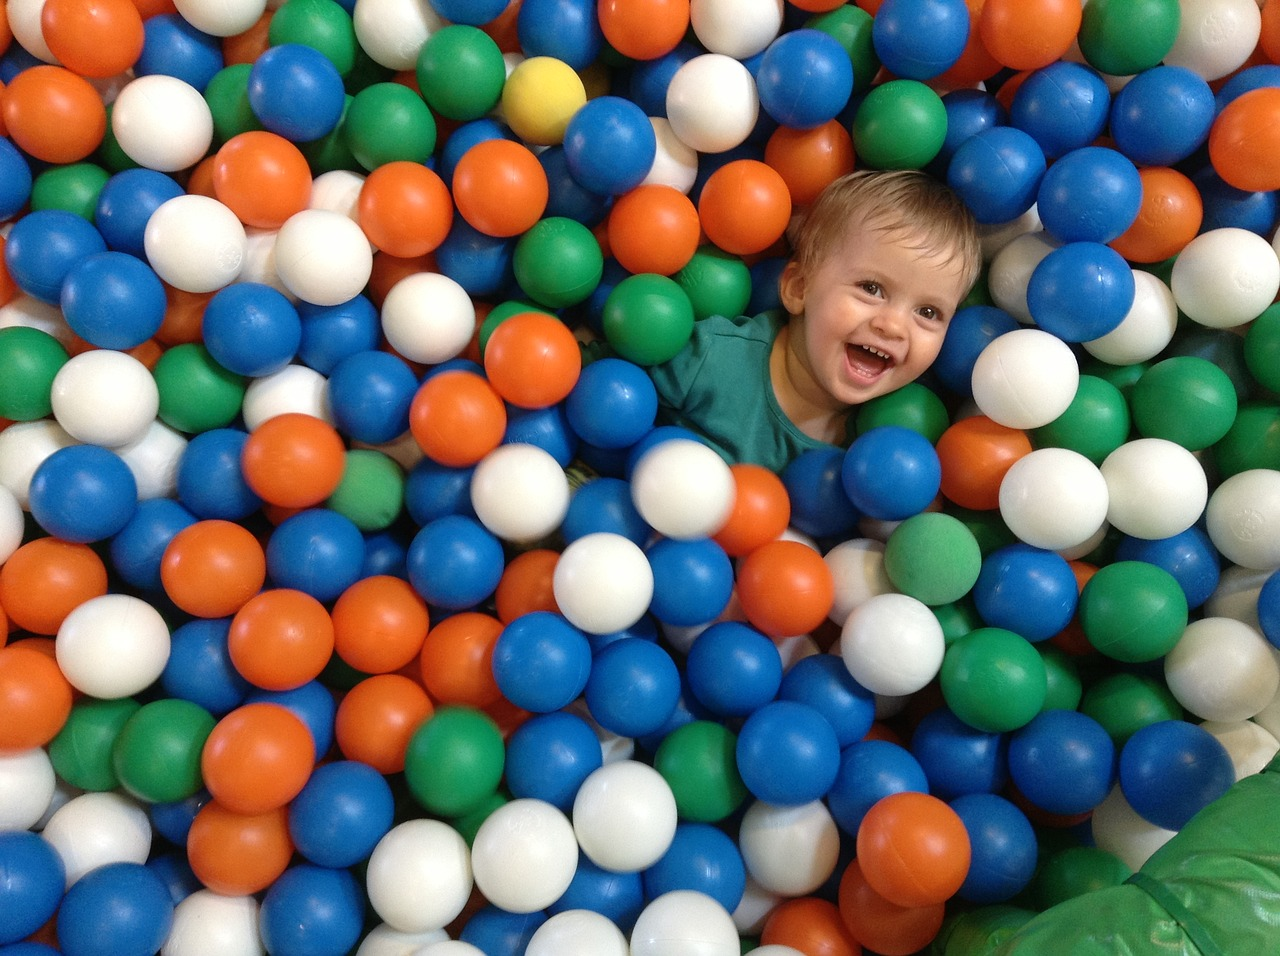 Ball Pit - The 7 Best Ball Pits for Active Outdoorsy Toddlers